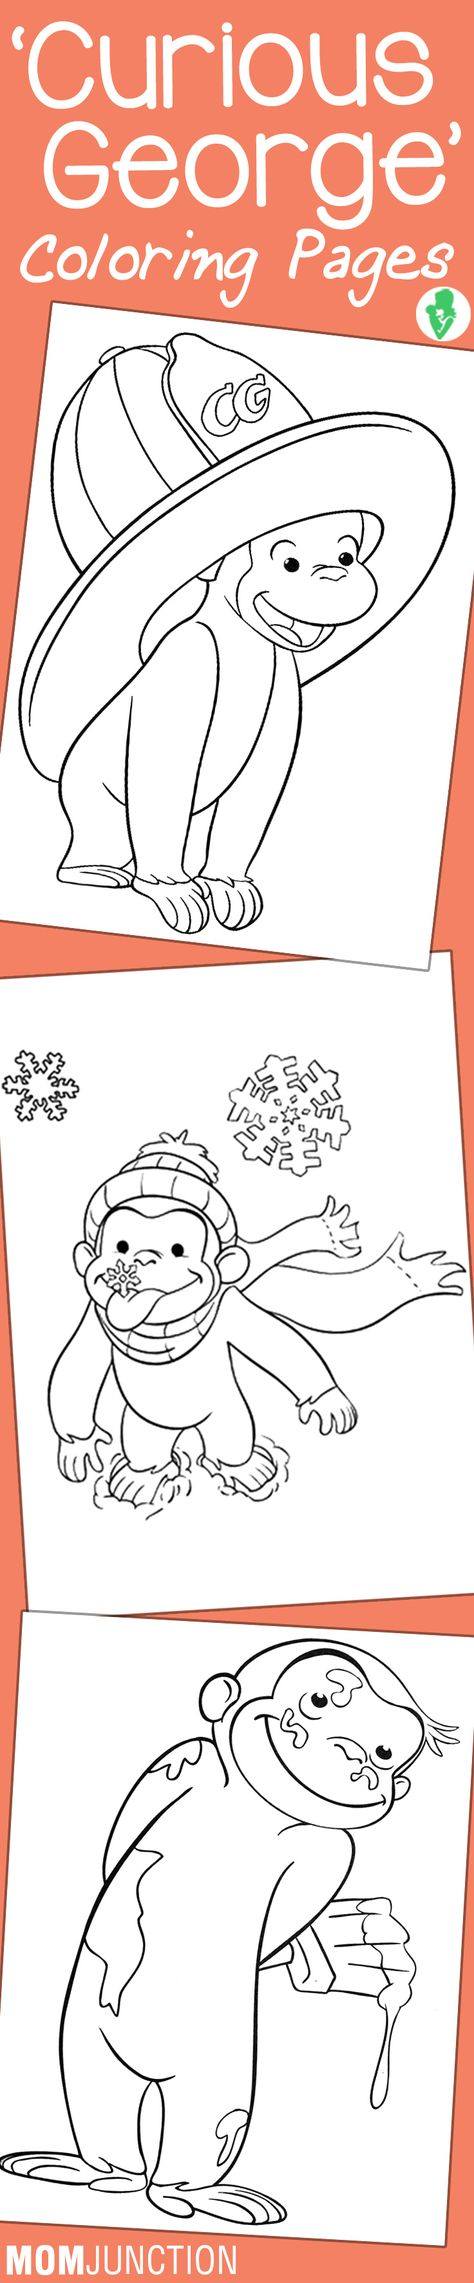 15 Best 'Curious George' Coloring Pages For Your Little Ones